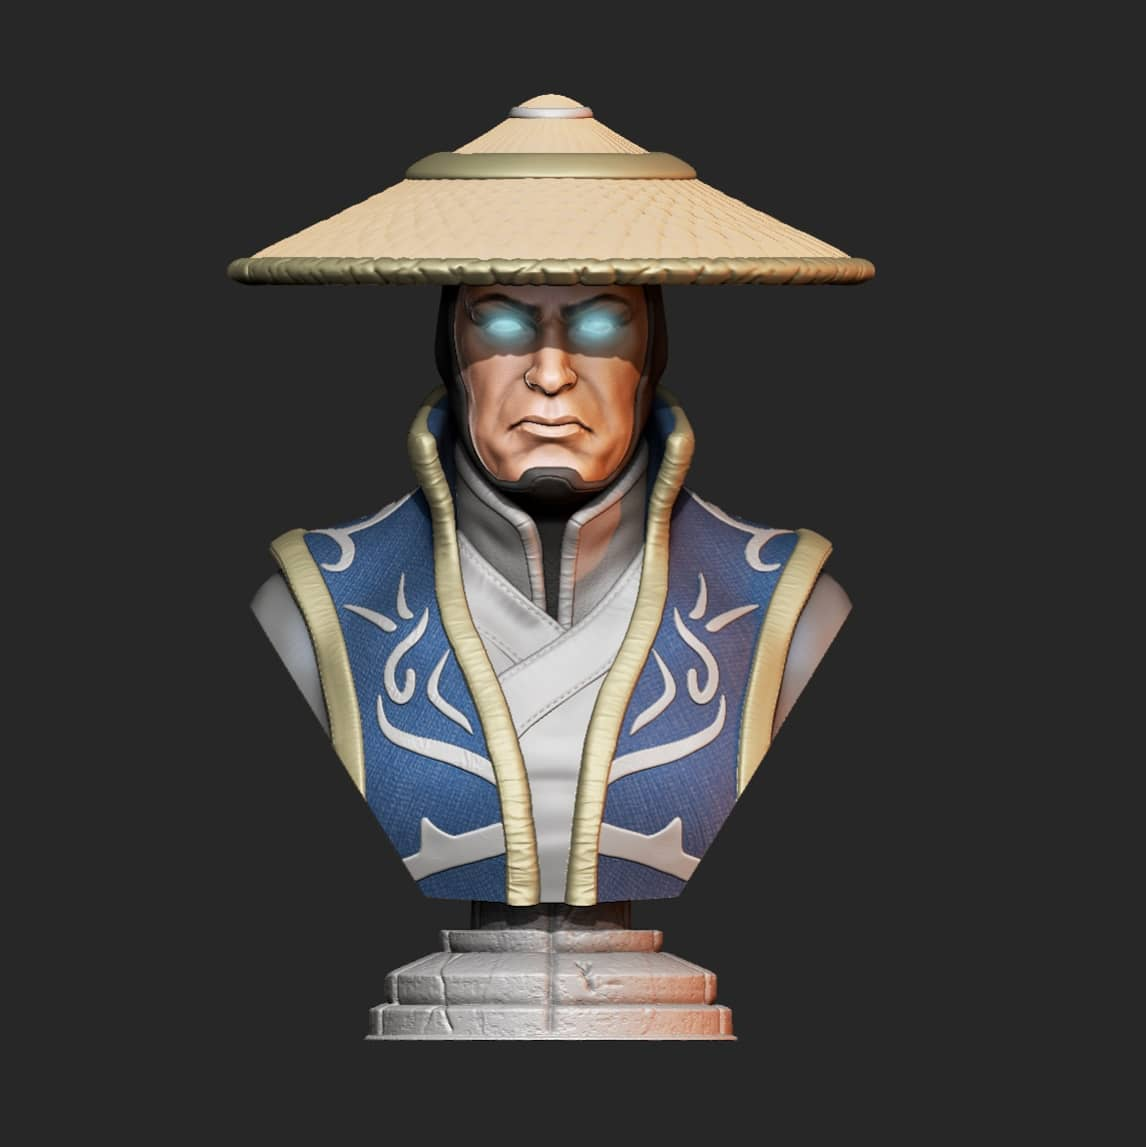 My Raiden is out :)  Printed on @Prusa3D mk3s with @Fiberlogy_3D bronze and gold and SL1 with some @esun3dfilament resin leftovers :)  #MortalKombat11 #raiden #3dprinting #3dmodeling #zbrush #3dprinted #fanart